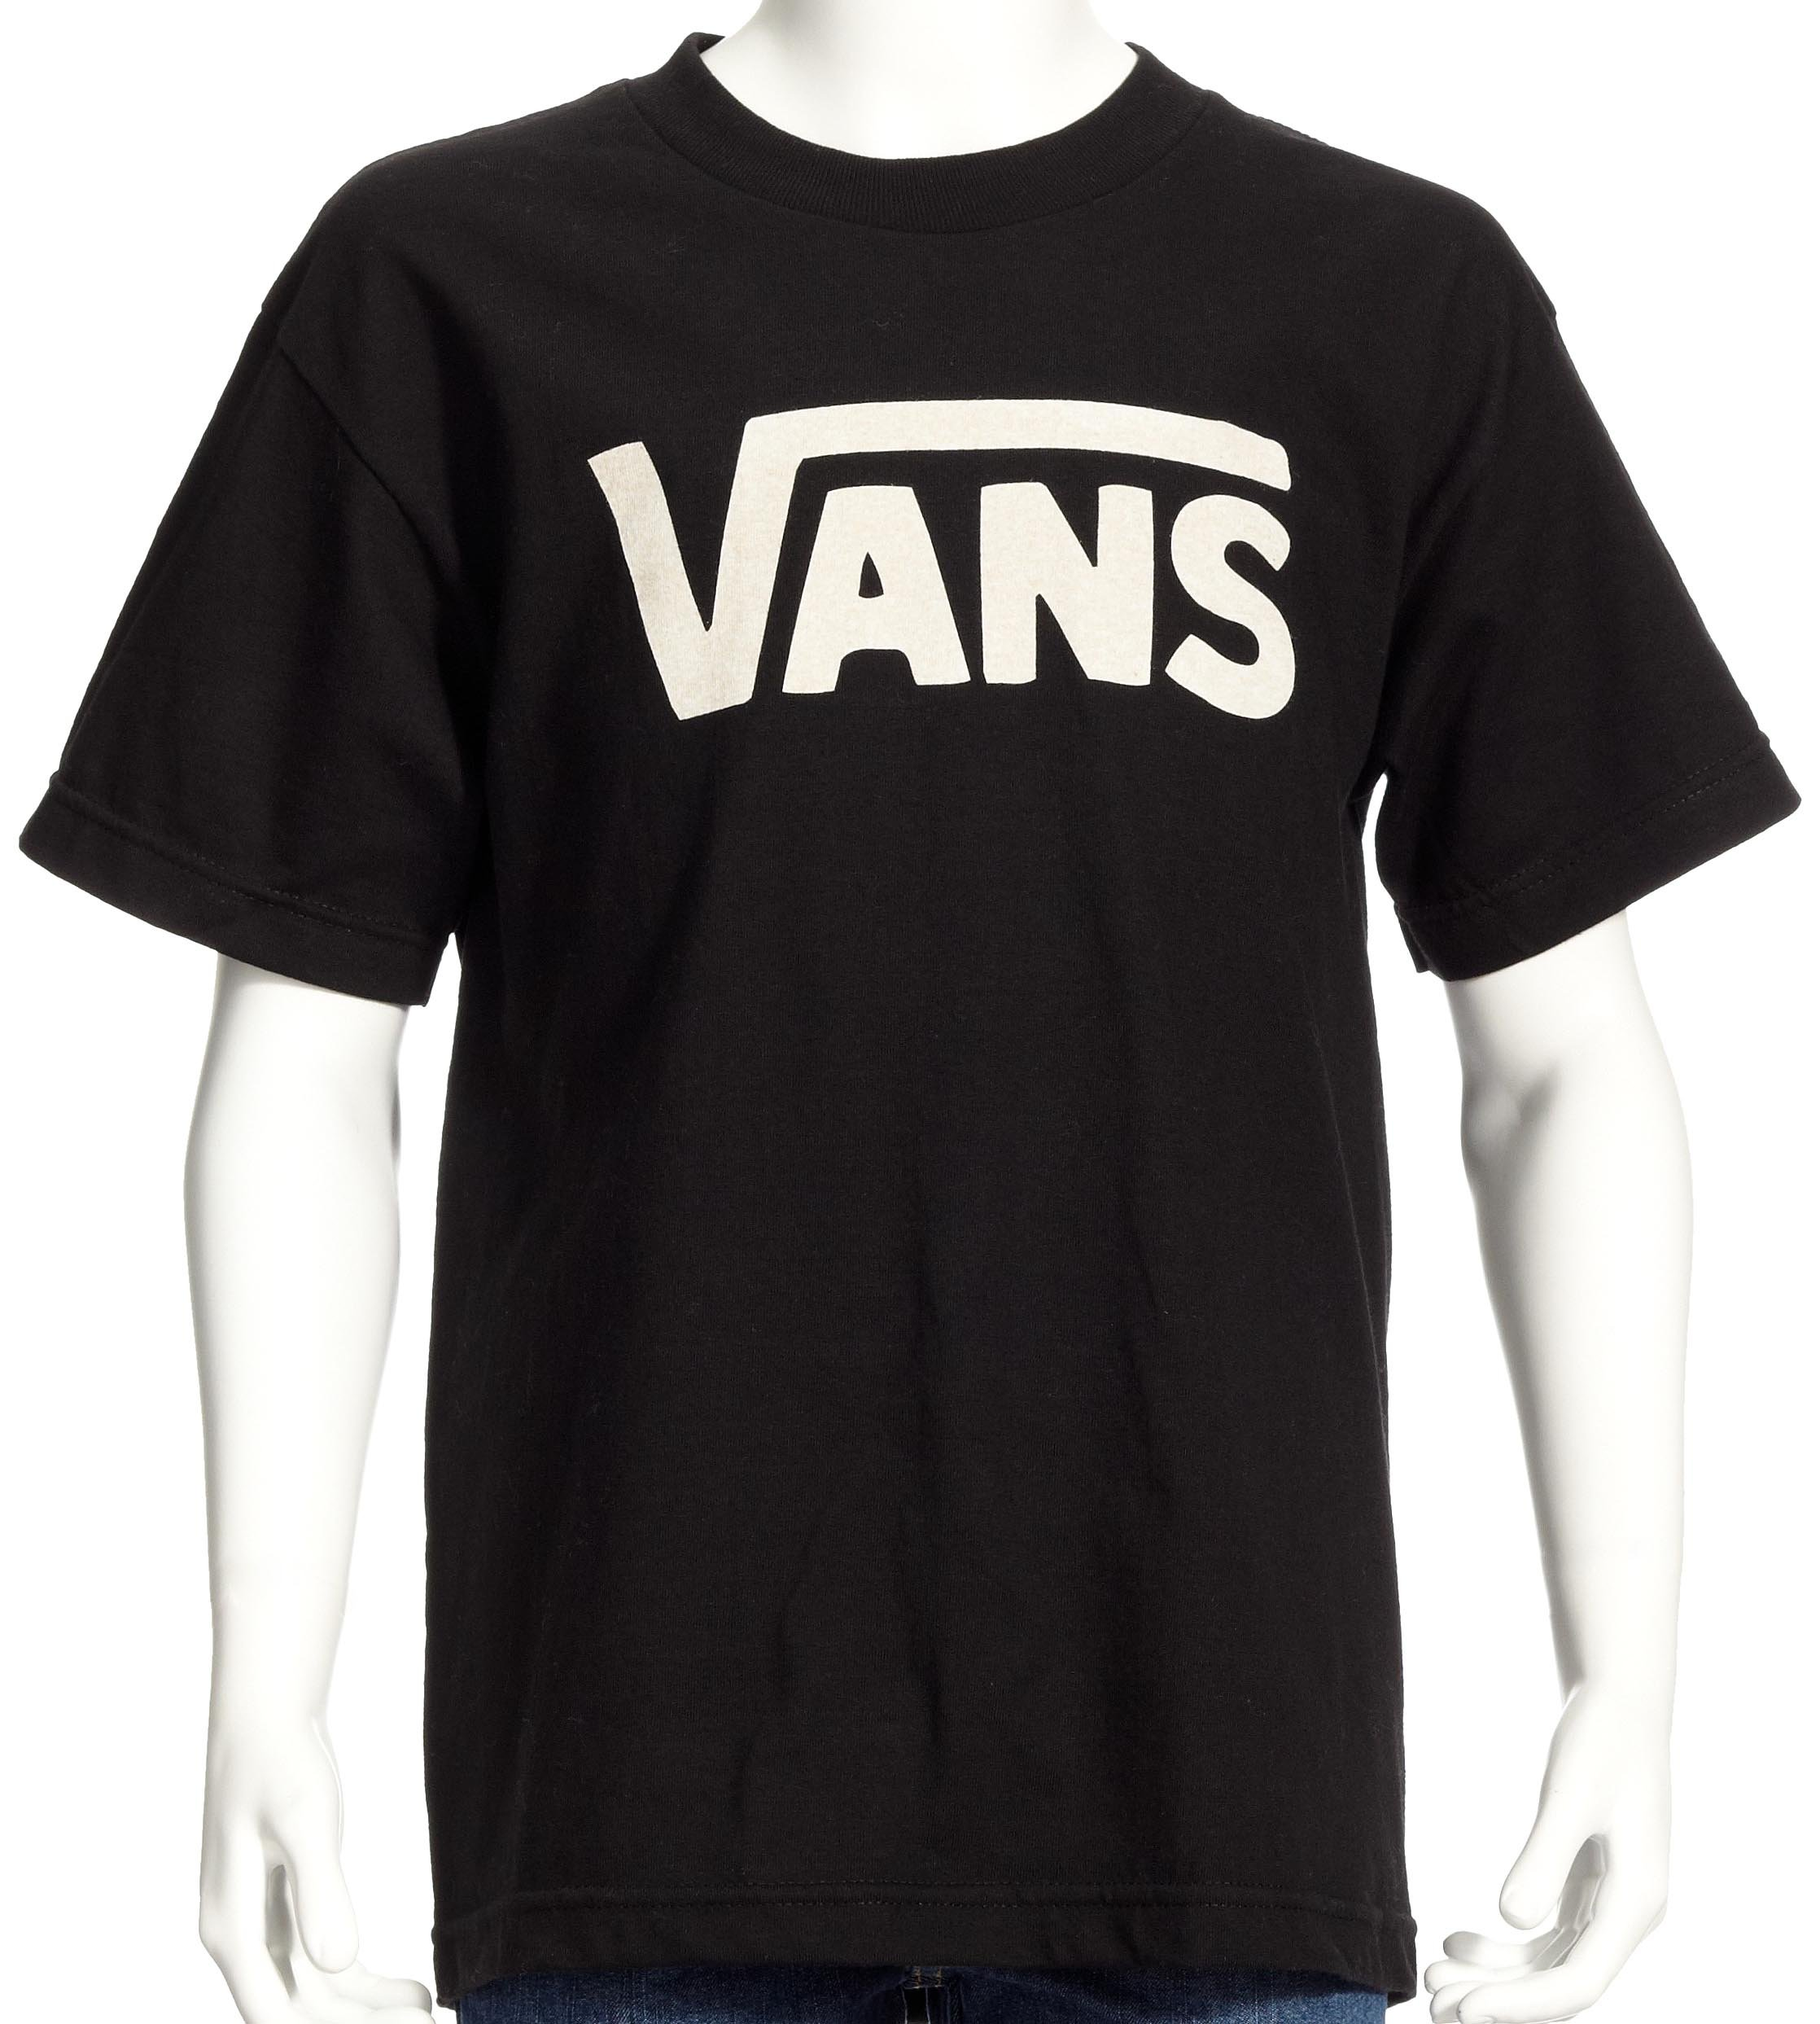 Vans Kids Boys Classic Tee (Big Kids), Black/White, LG (14-16